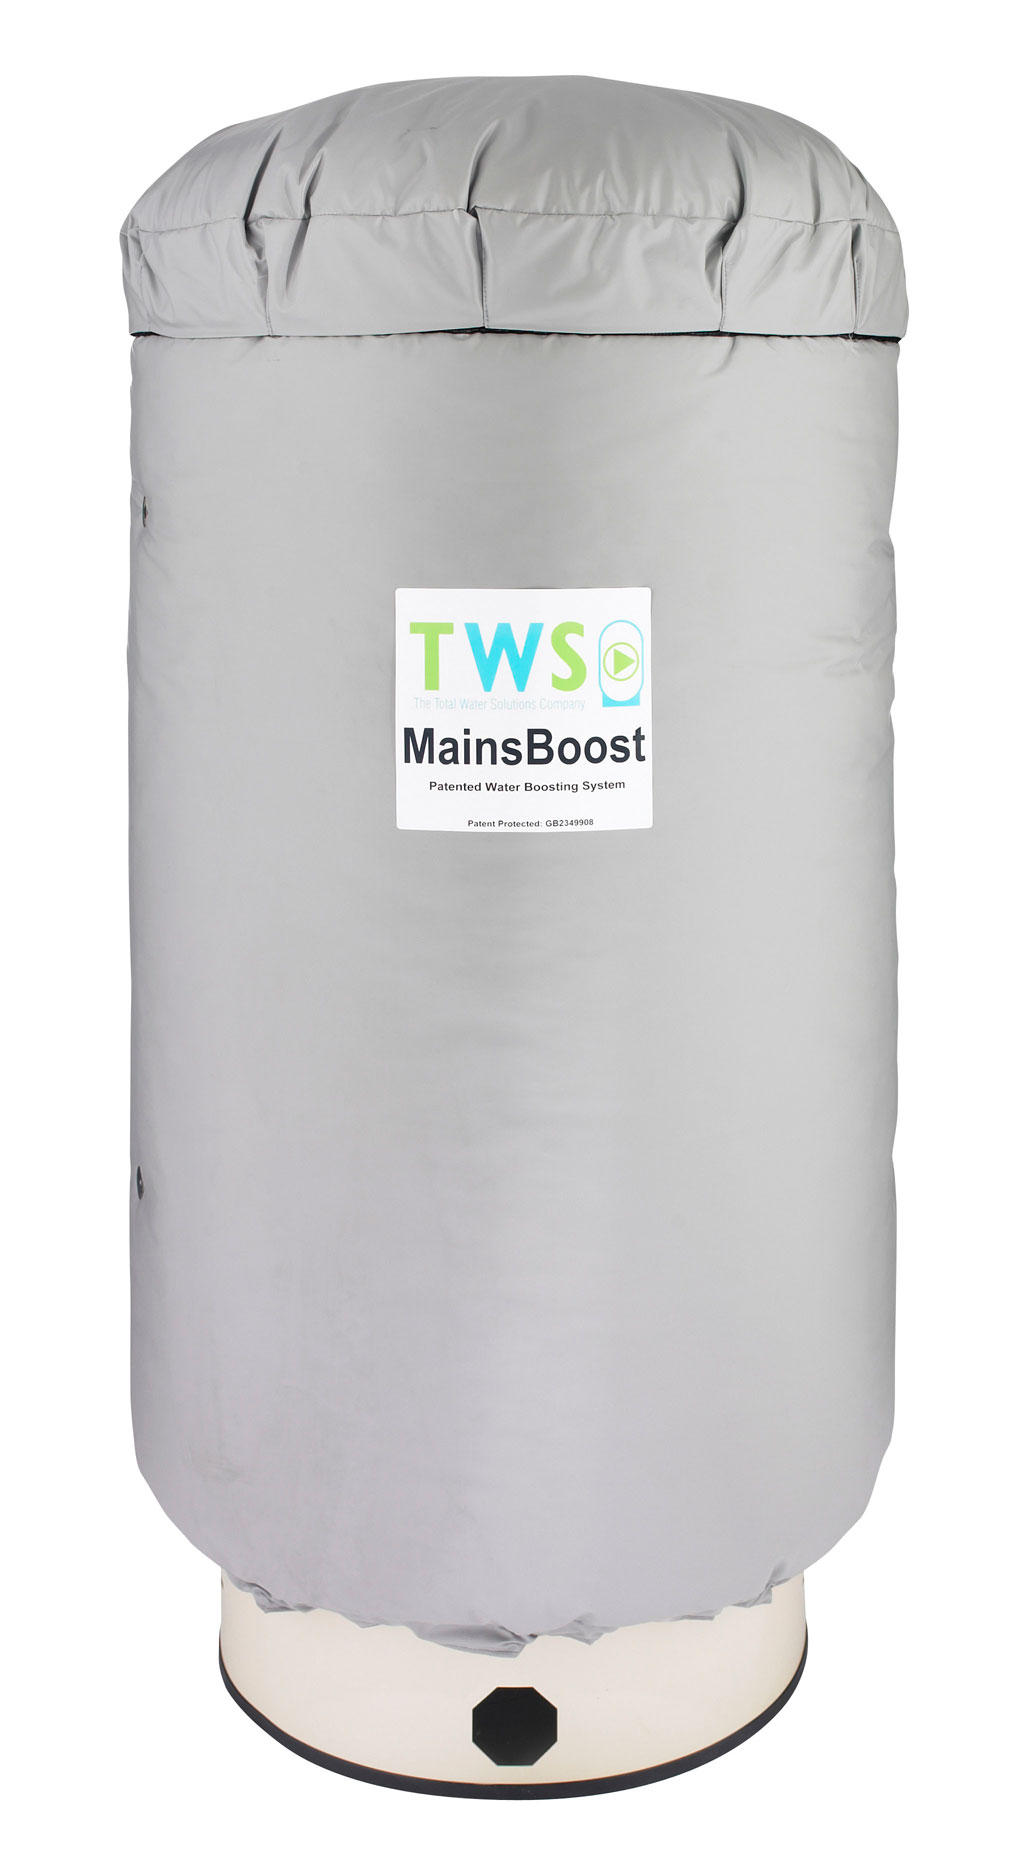 MainsBoost jacket